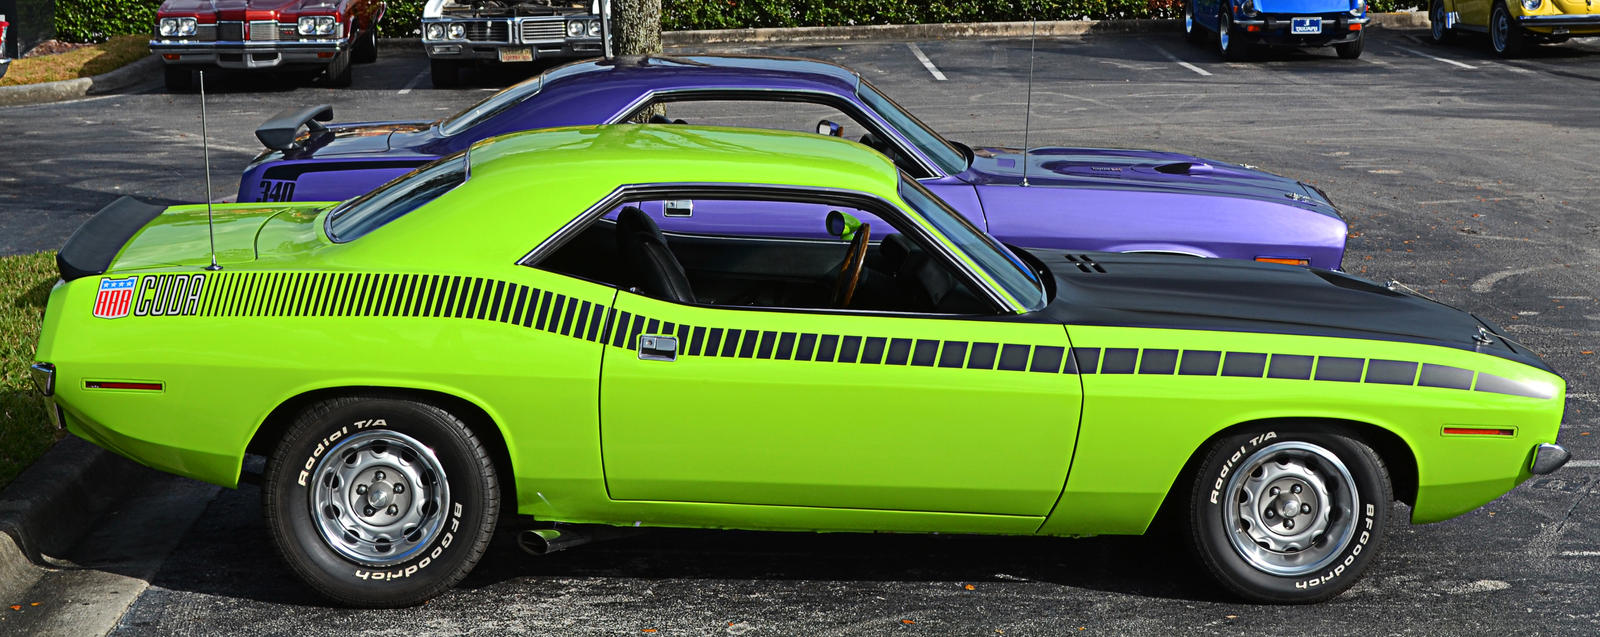 I'd be happy with just one Cuda by Nutdeep